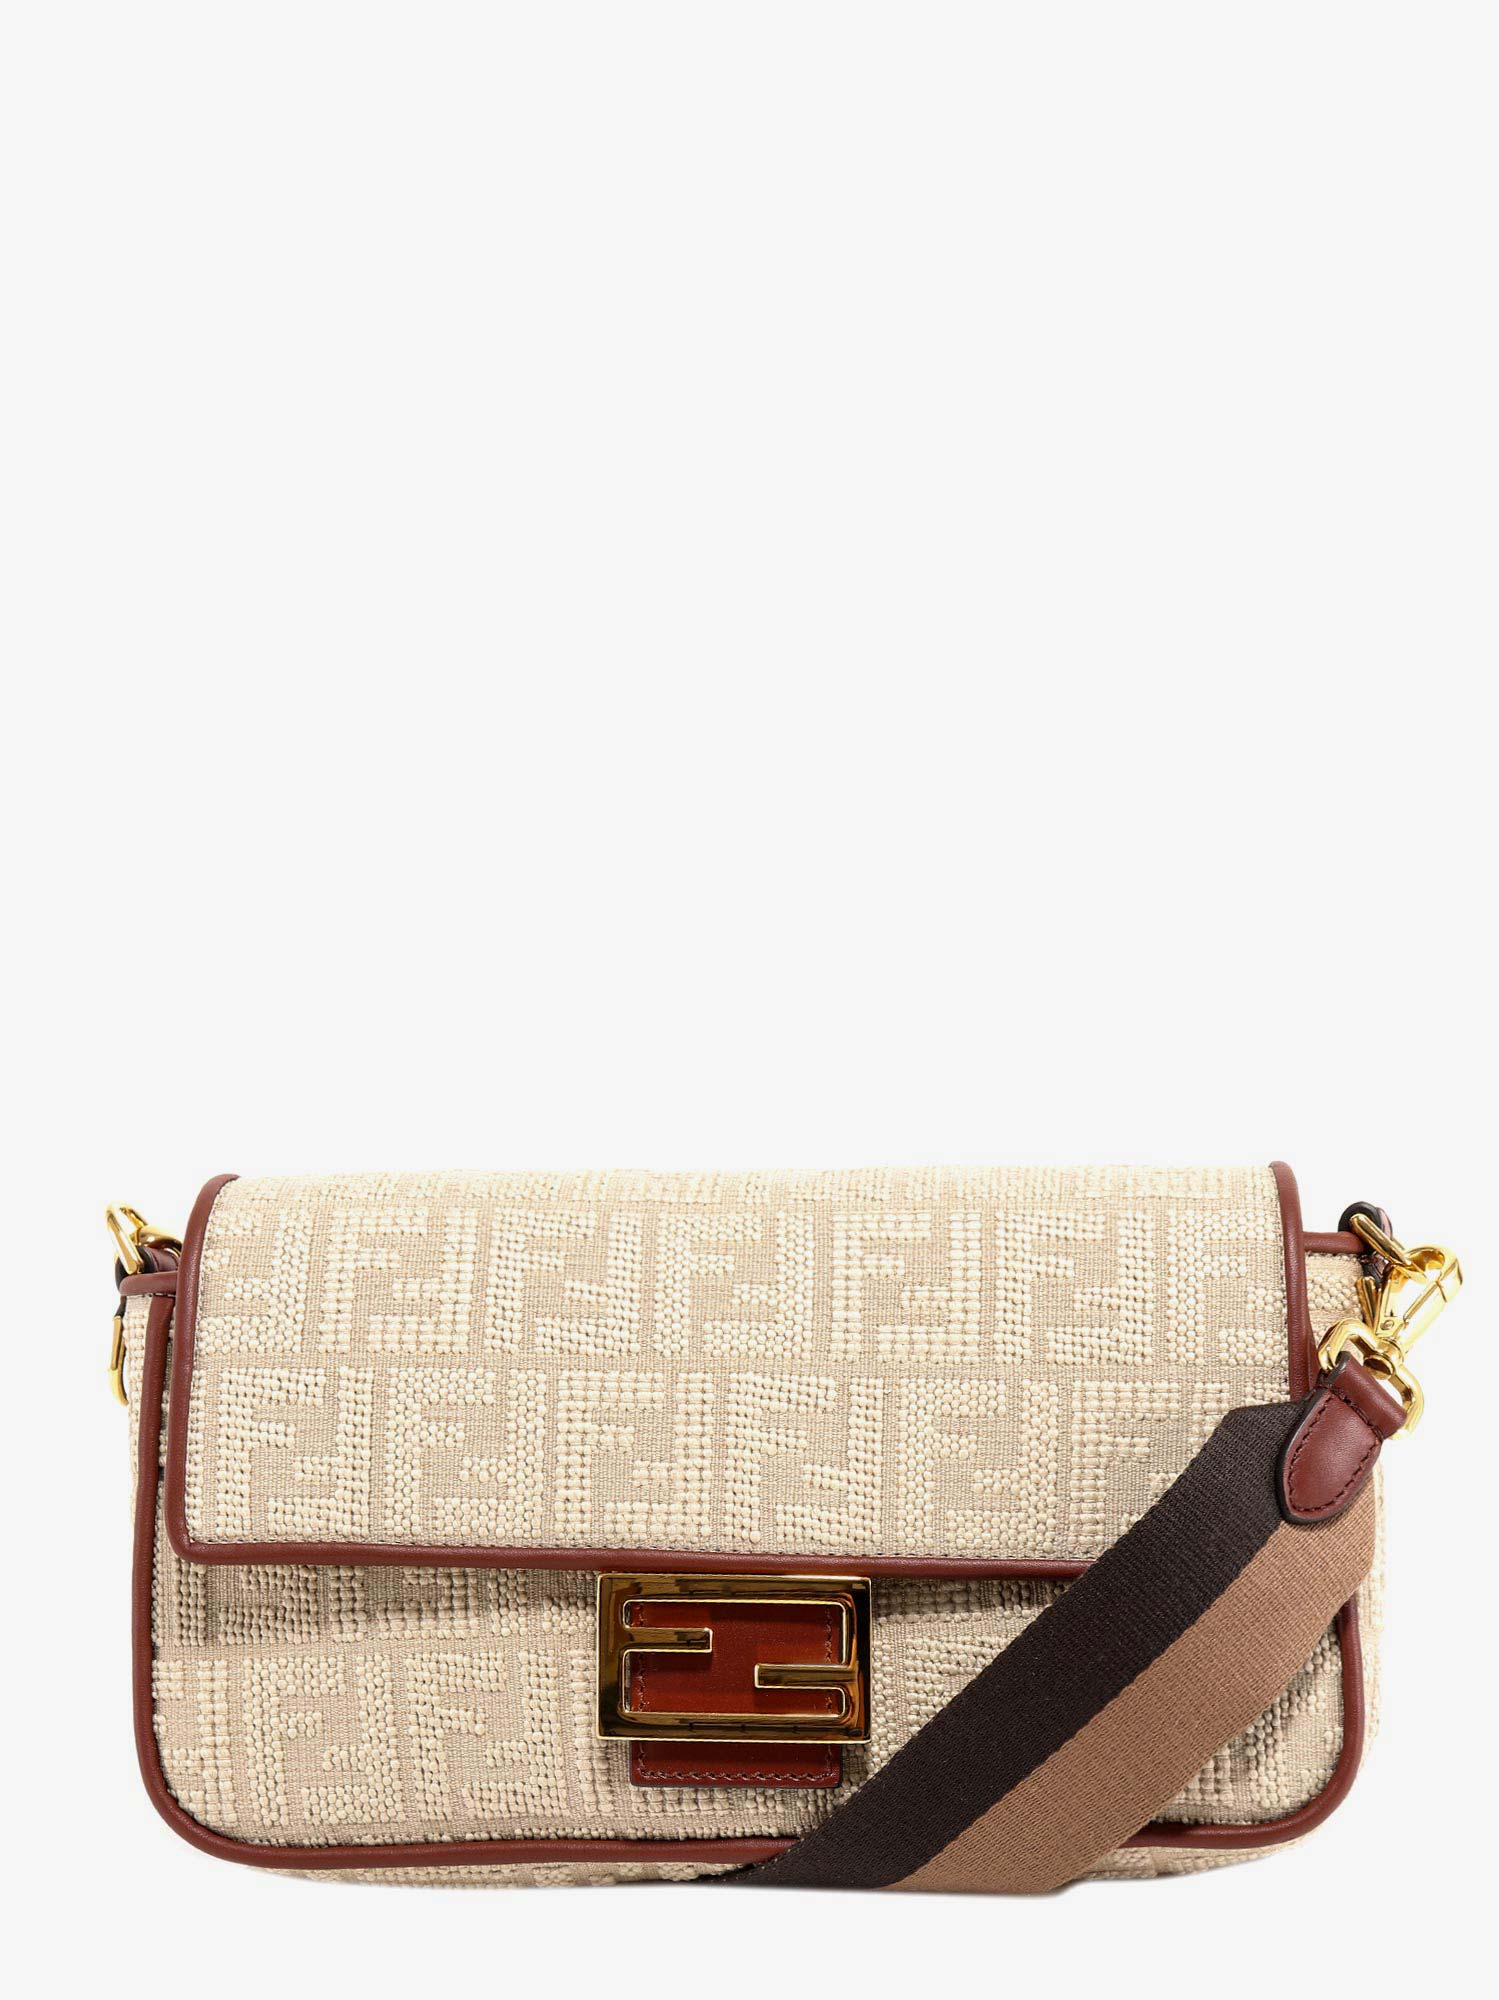 Fendi Canvases SHOULDER BAG